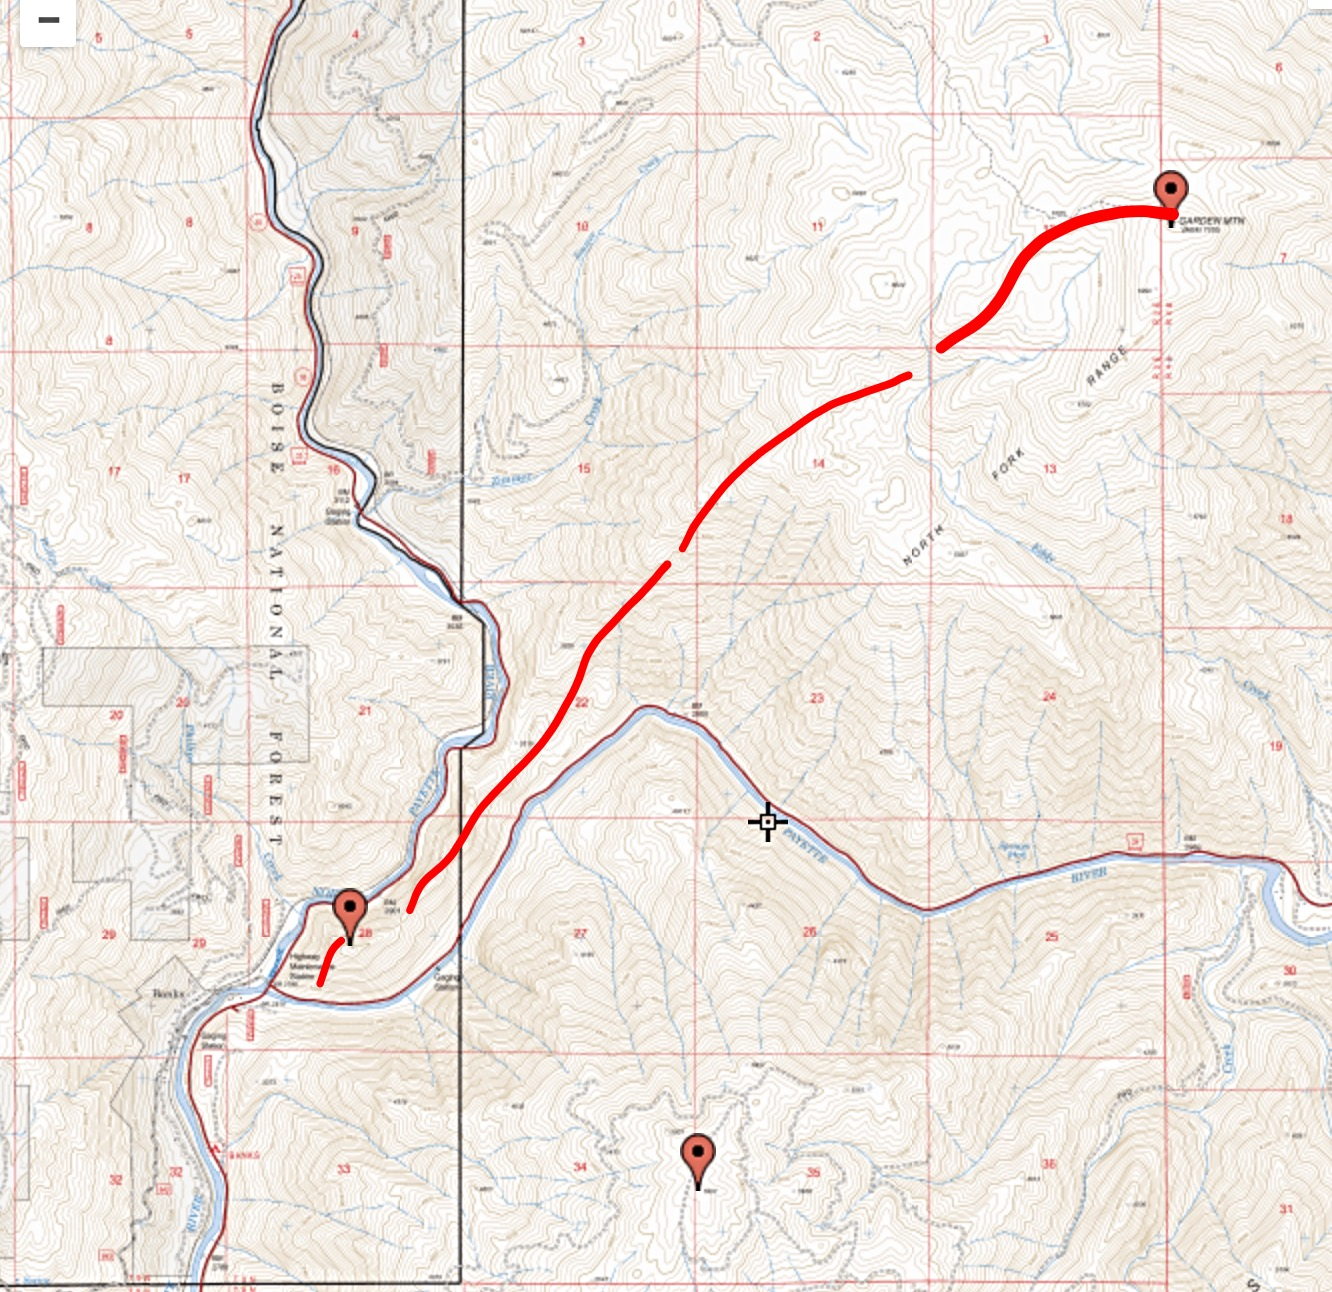 The approximate route of our snowshoe trip to the summit in 2009.